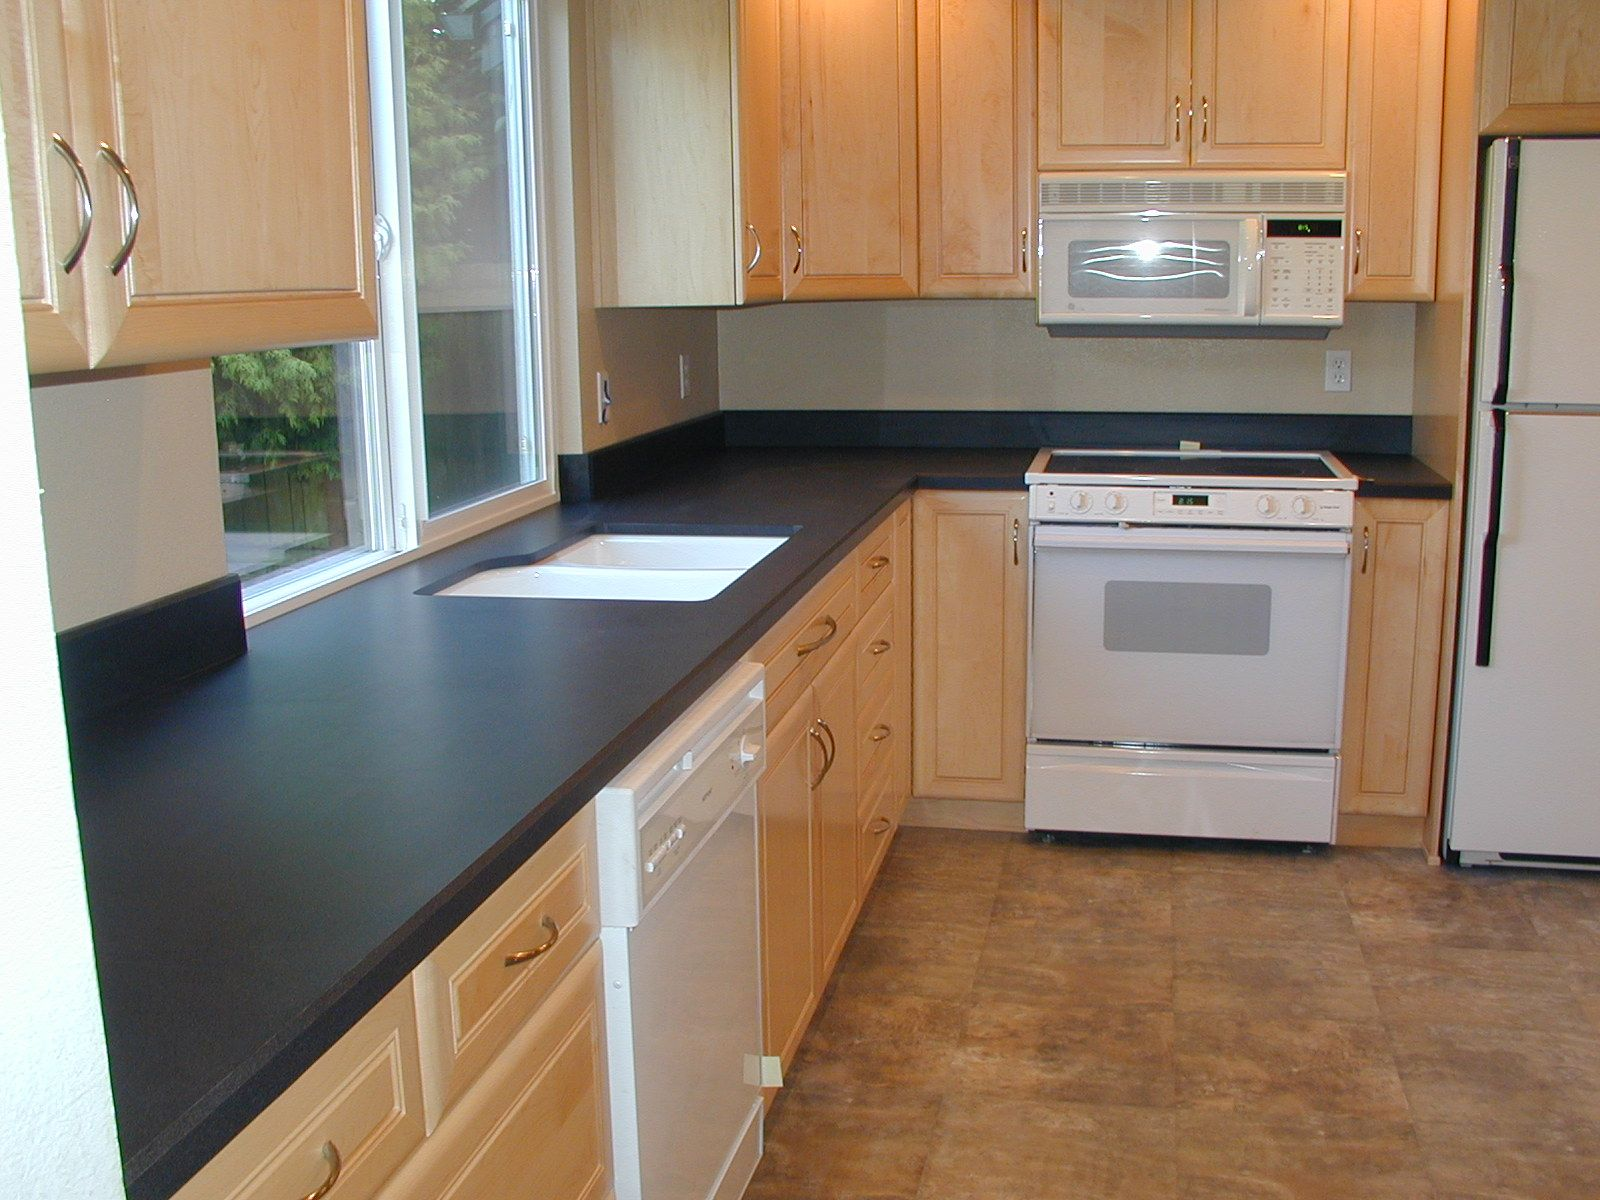 Kitchen Countertops Product : Kitchen ideas with dark countertops countertop design